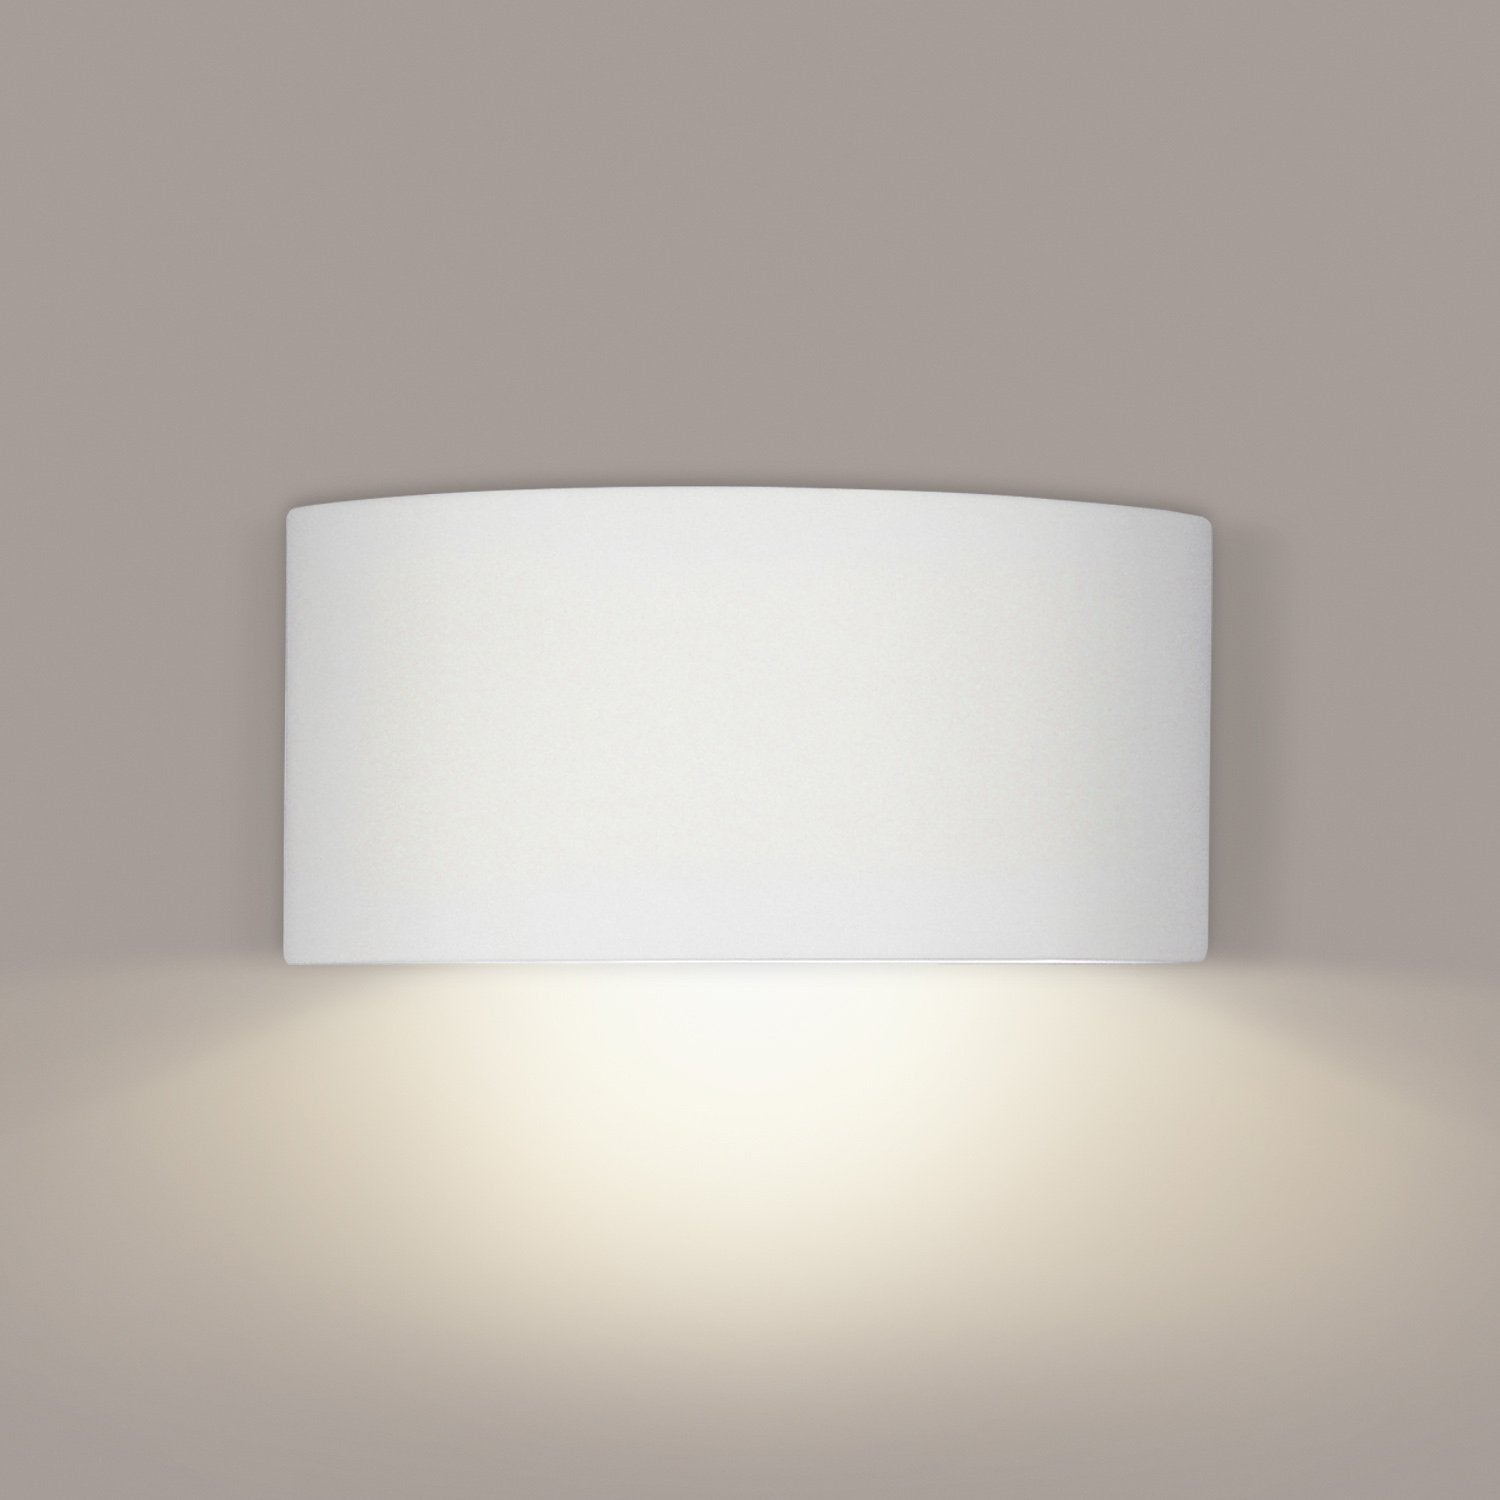 A19 1701-LEDGU24-PS Islands of Light Collection Krete Pistachio Finish Wall Sconce